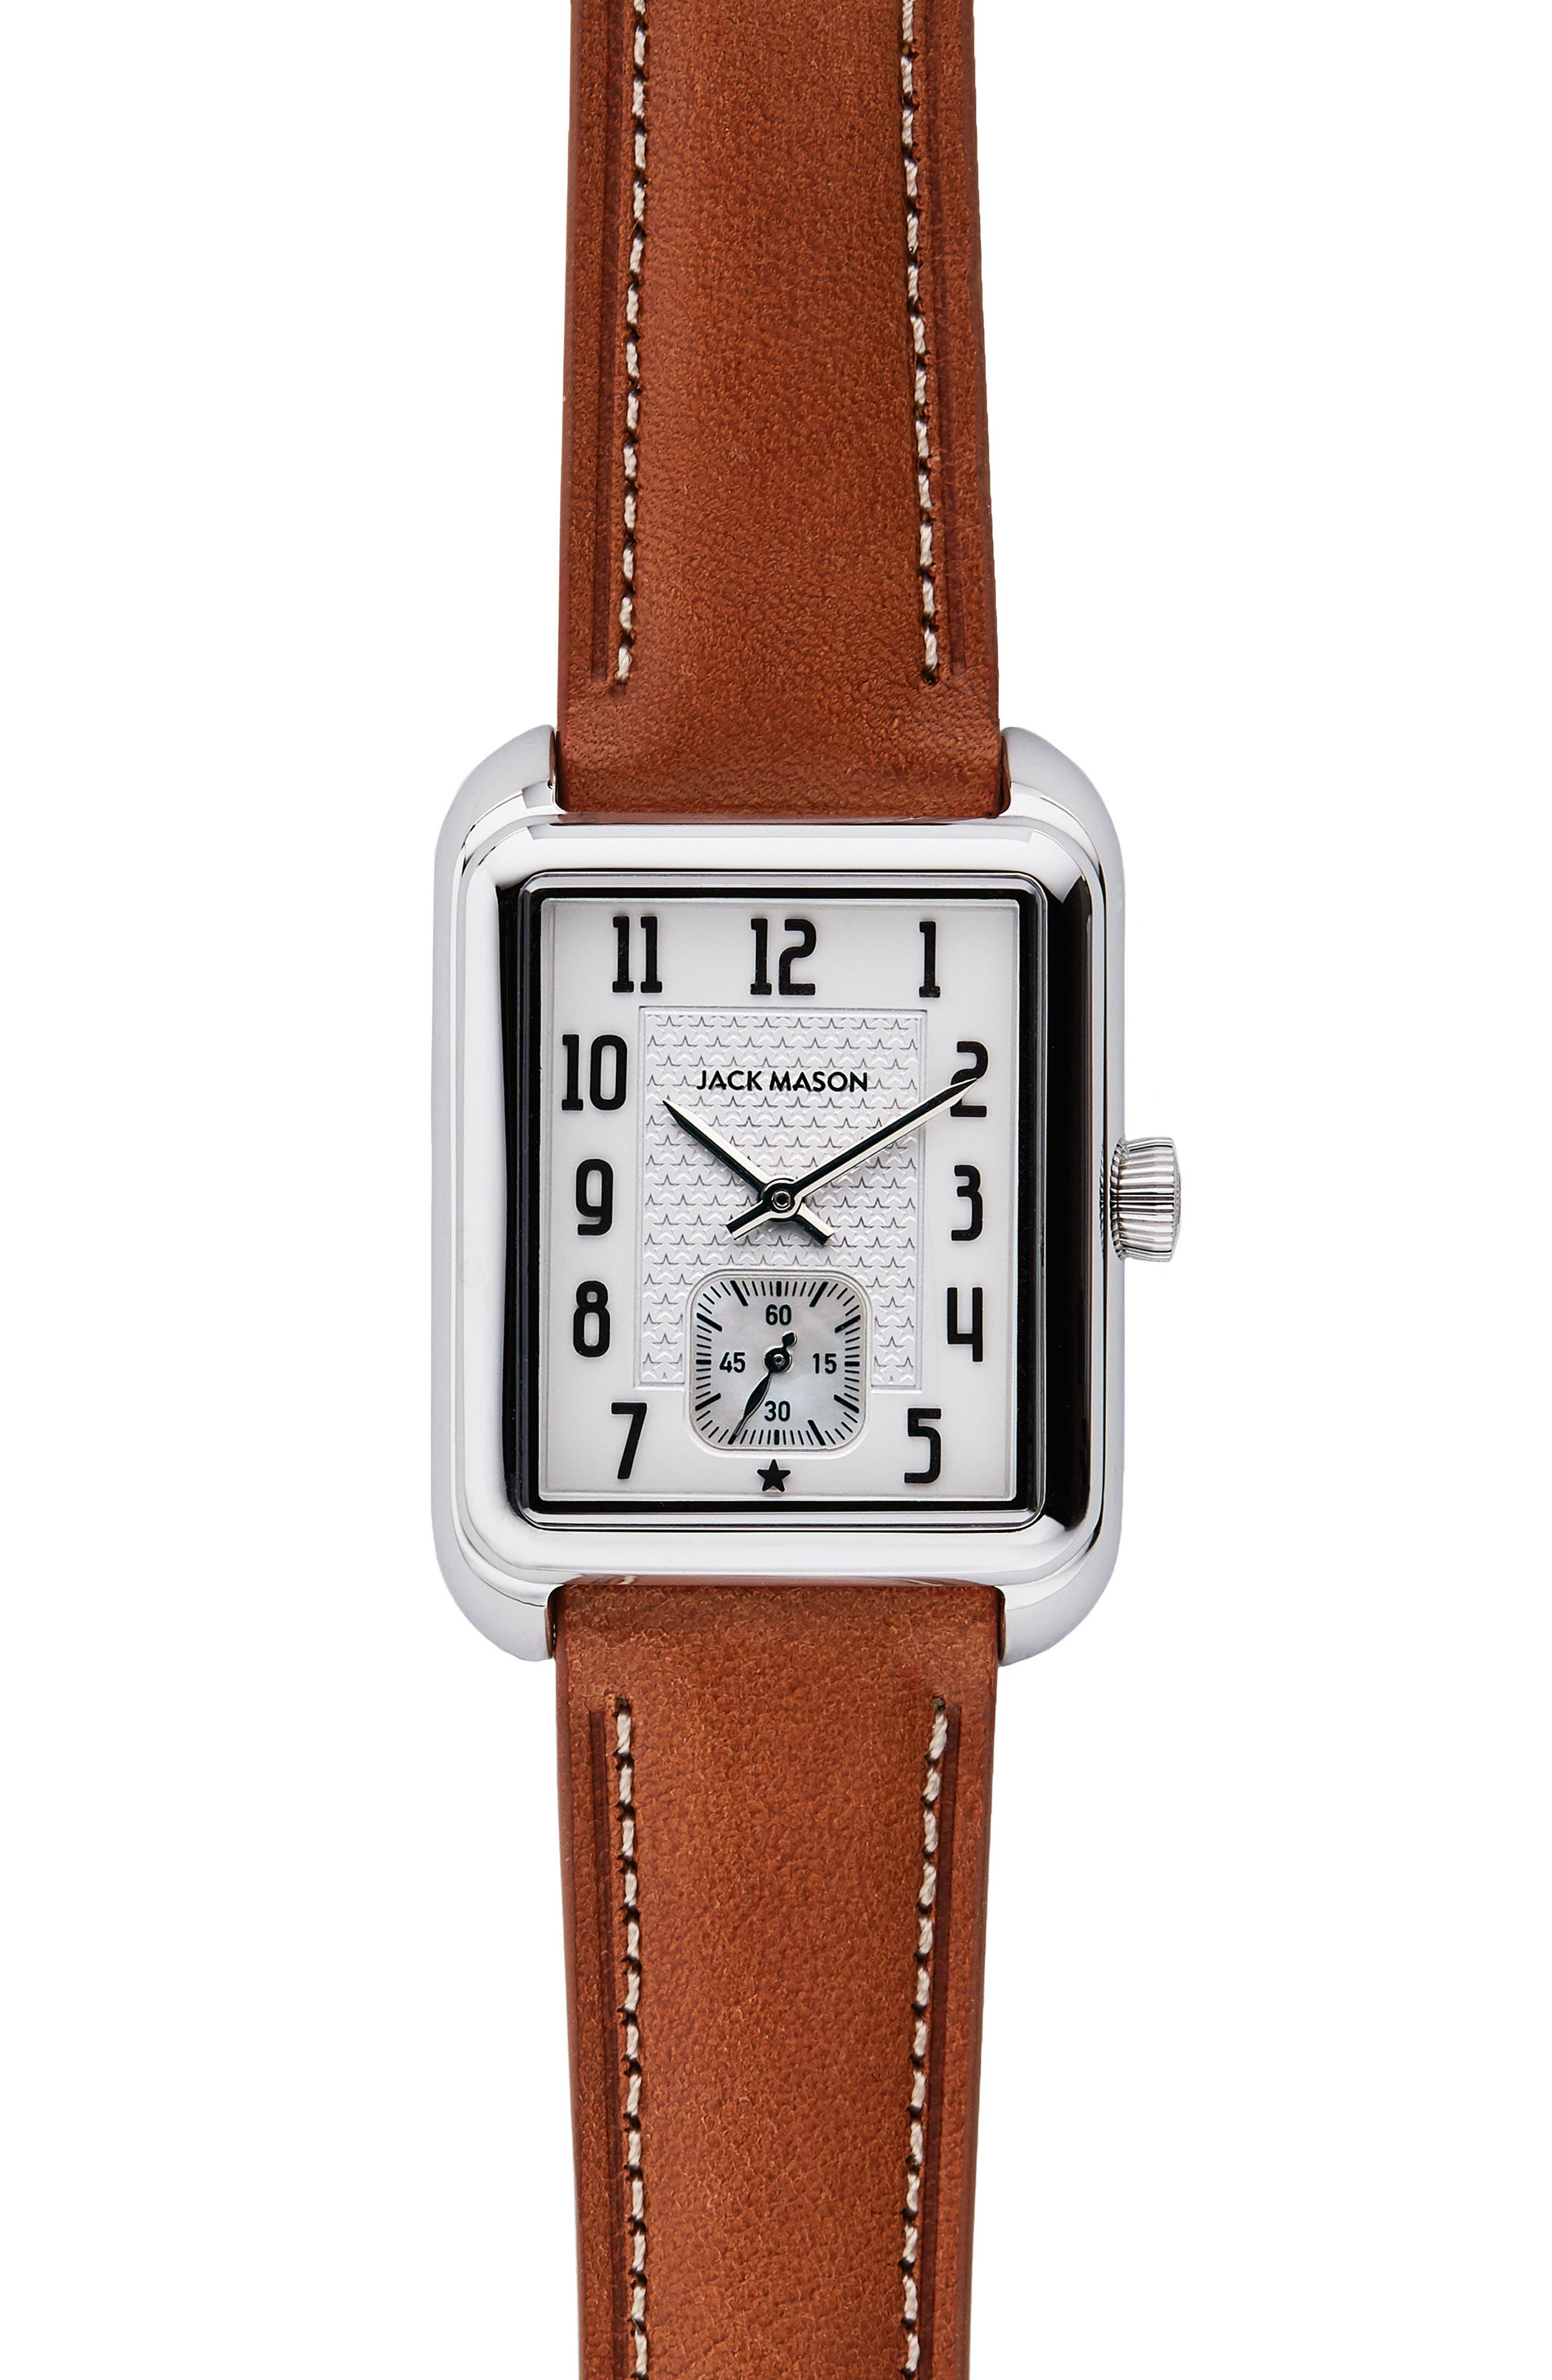 JACK MASON ISSUE NO. 2 LEATHER STRAP WATCH, 34MM X 28MM